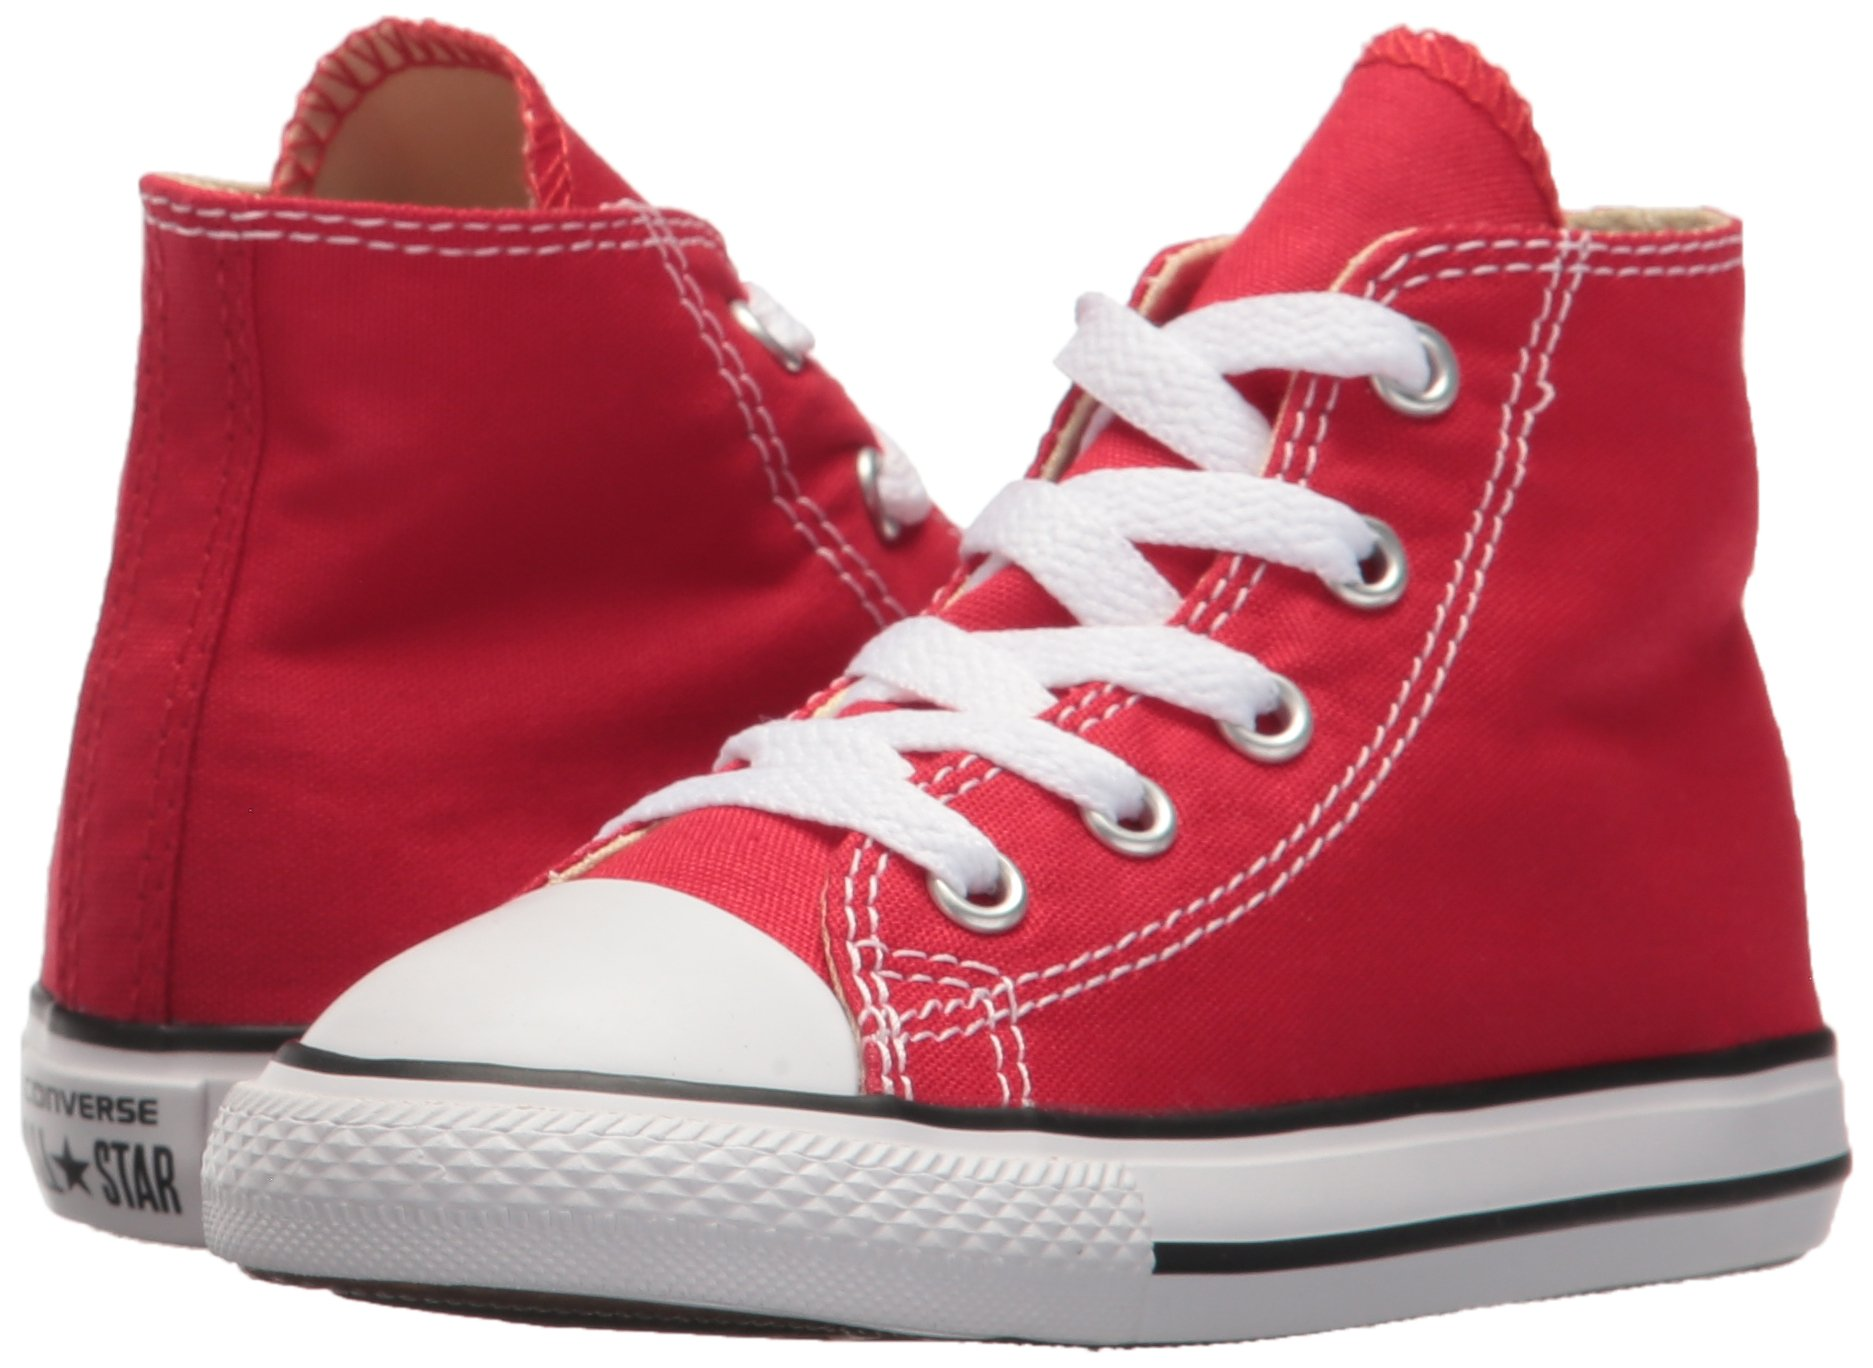 Converse Kids Chuck Taylor Classic Hi Red Sneaker - 10.5 by Converse (Image #6)